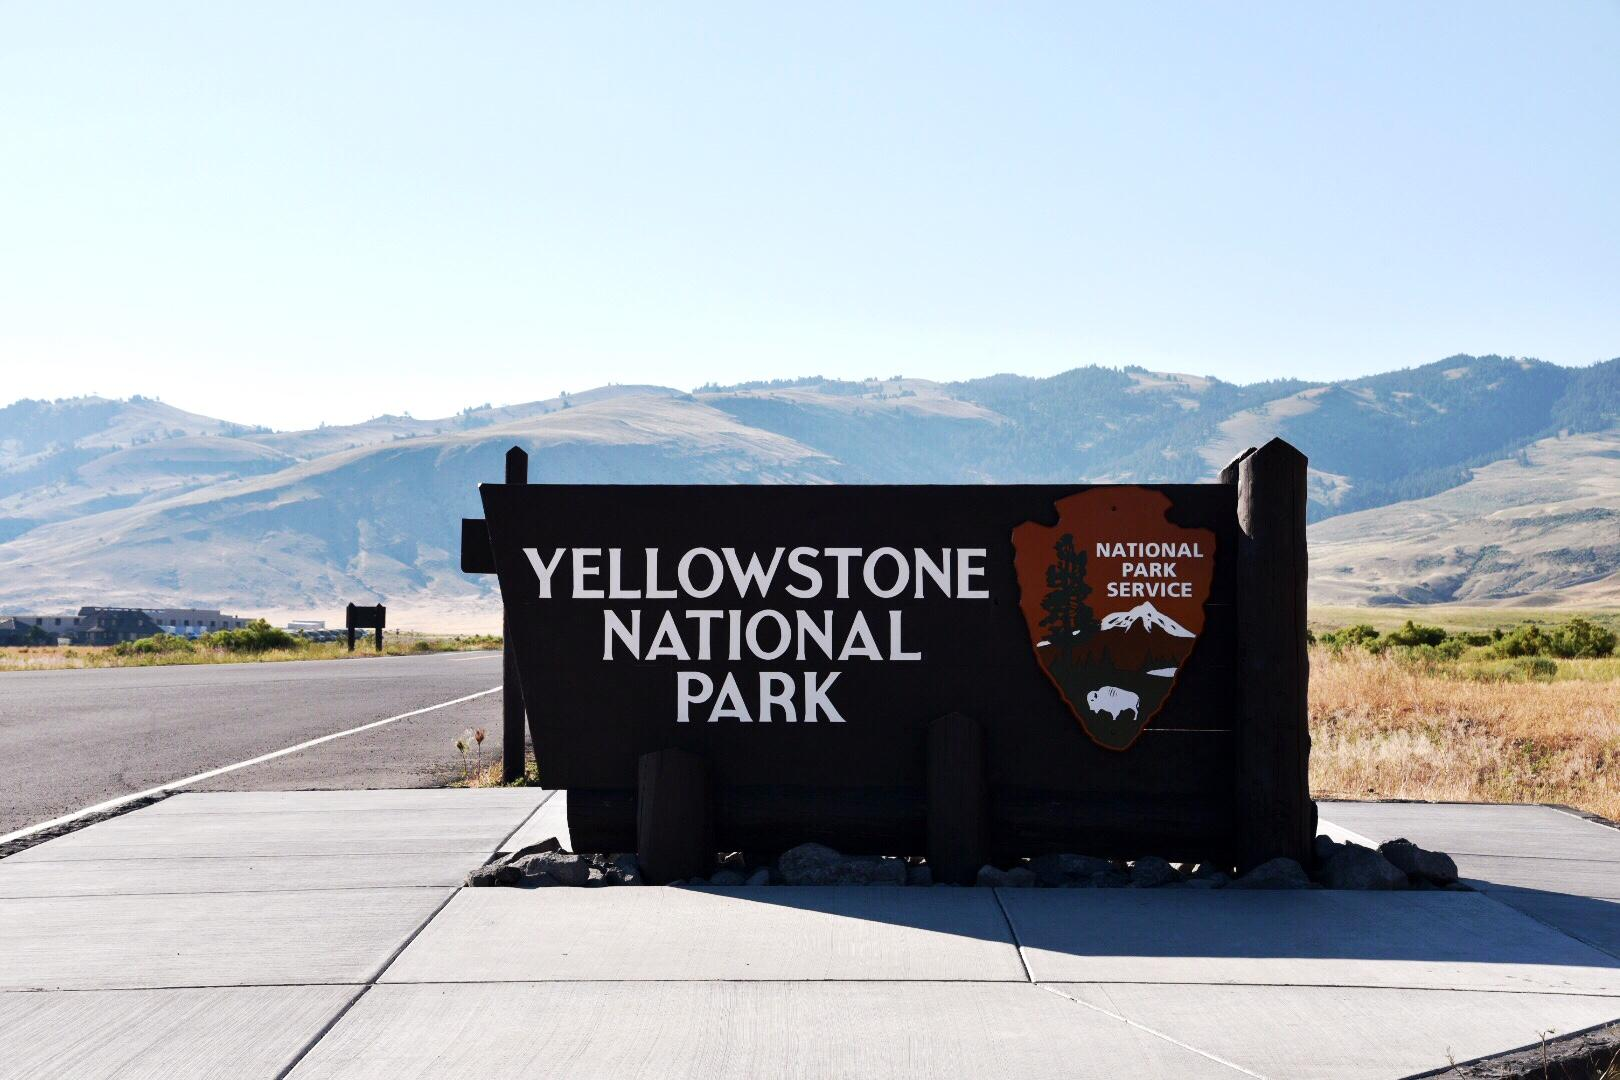 Yellowstone was first National Park in the U.S. and was established in 1872. It is also widely thought to be the first national park in the world. The vast 3,500 square mile wilderness stretches across the Yellowstone Caldera which is the largest supervolcano on the continent. (Image: Rebecca Mongrain/Seattle Refined)